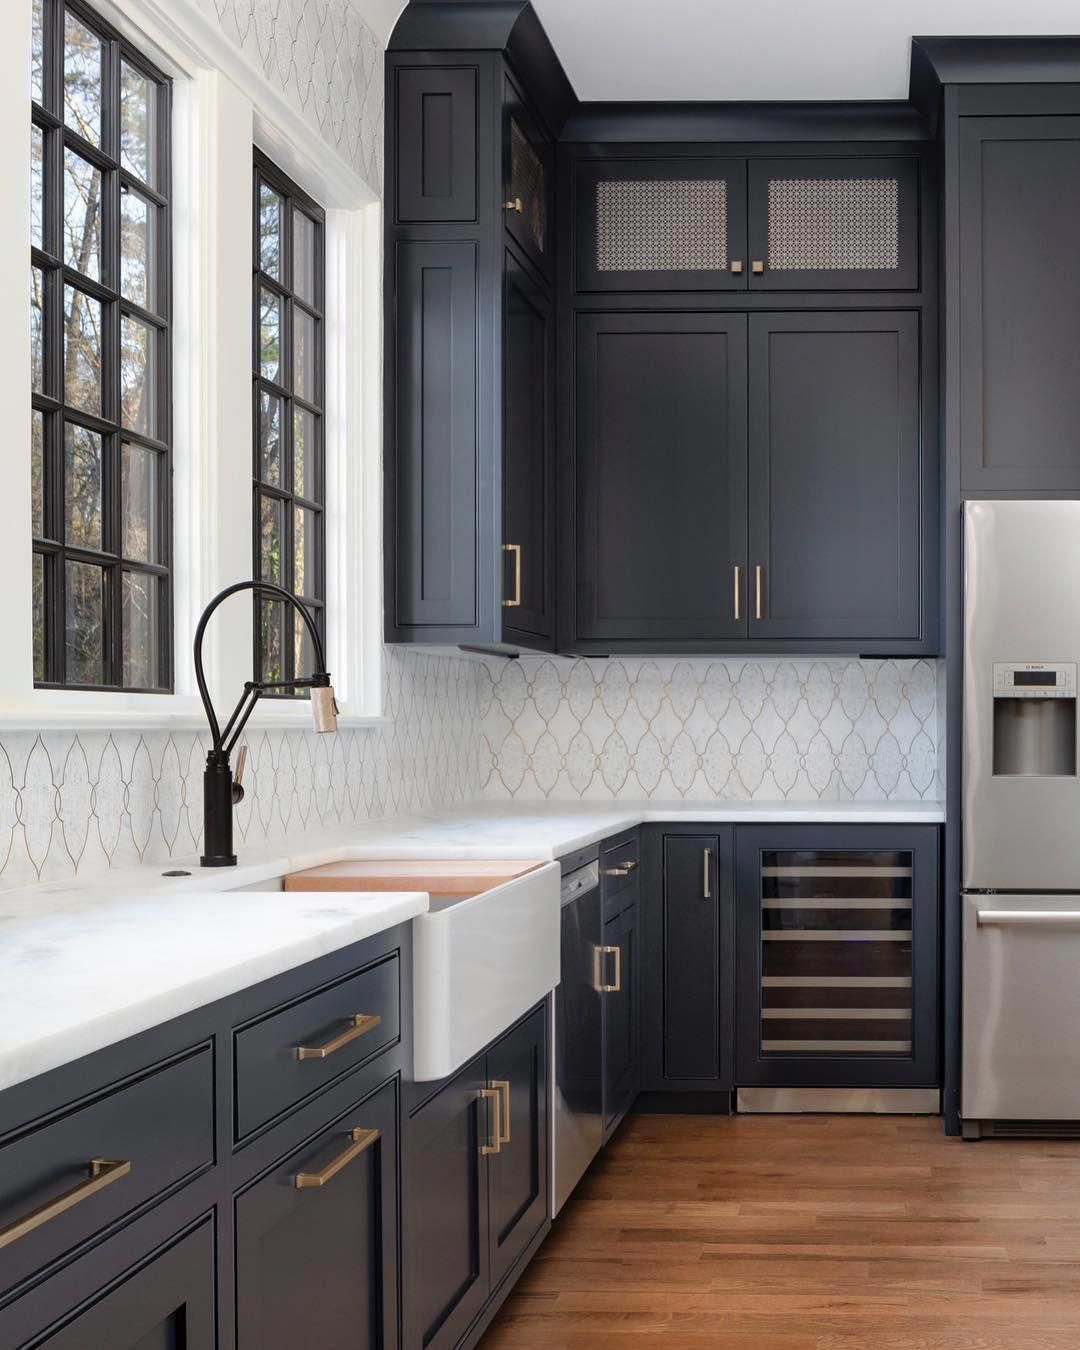 5 Tips On Build Small Kitchen Remodeling Ideas On A Budget: Money-Saving Kitchen Renovation